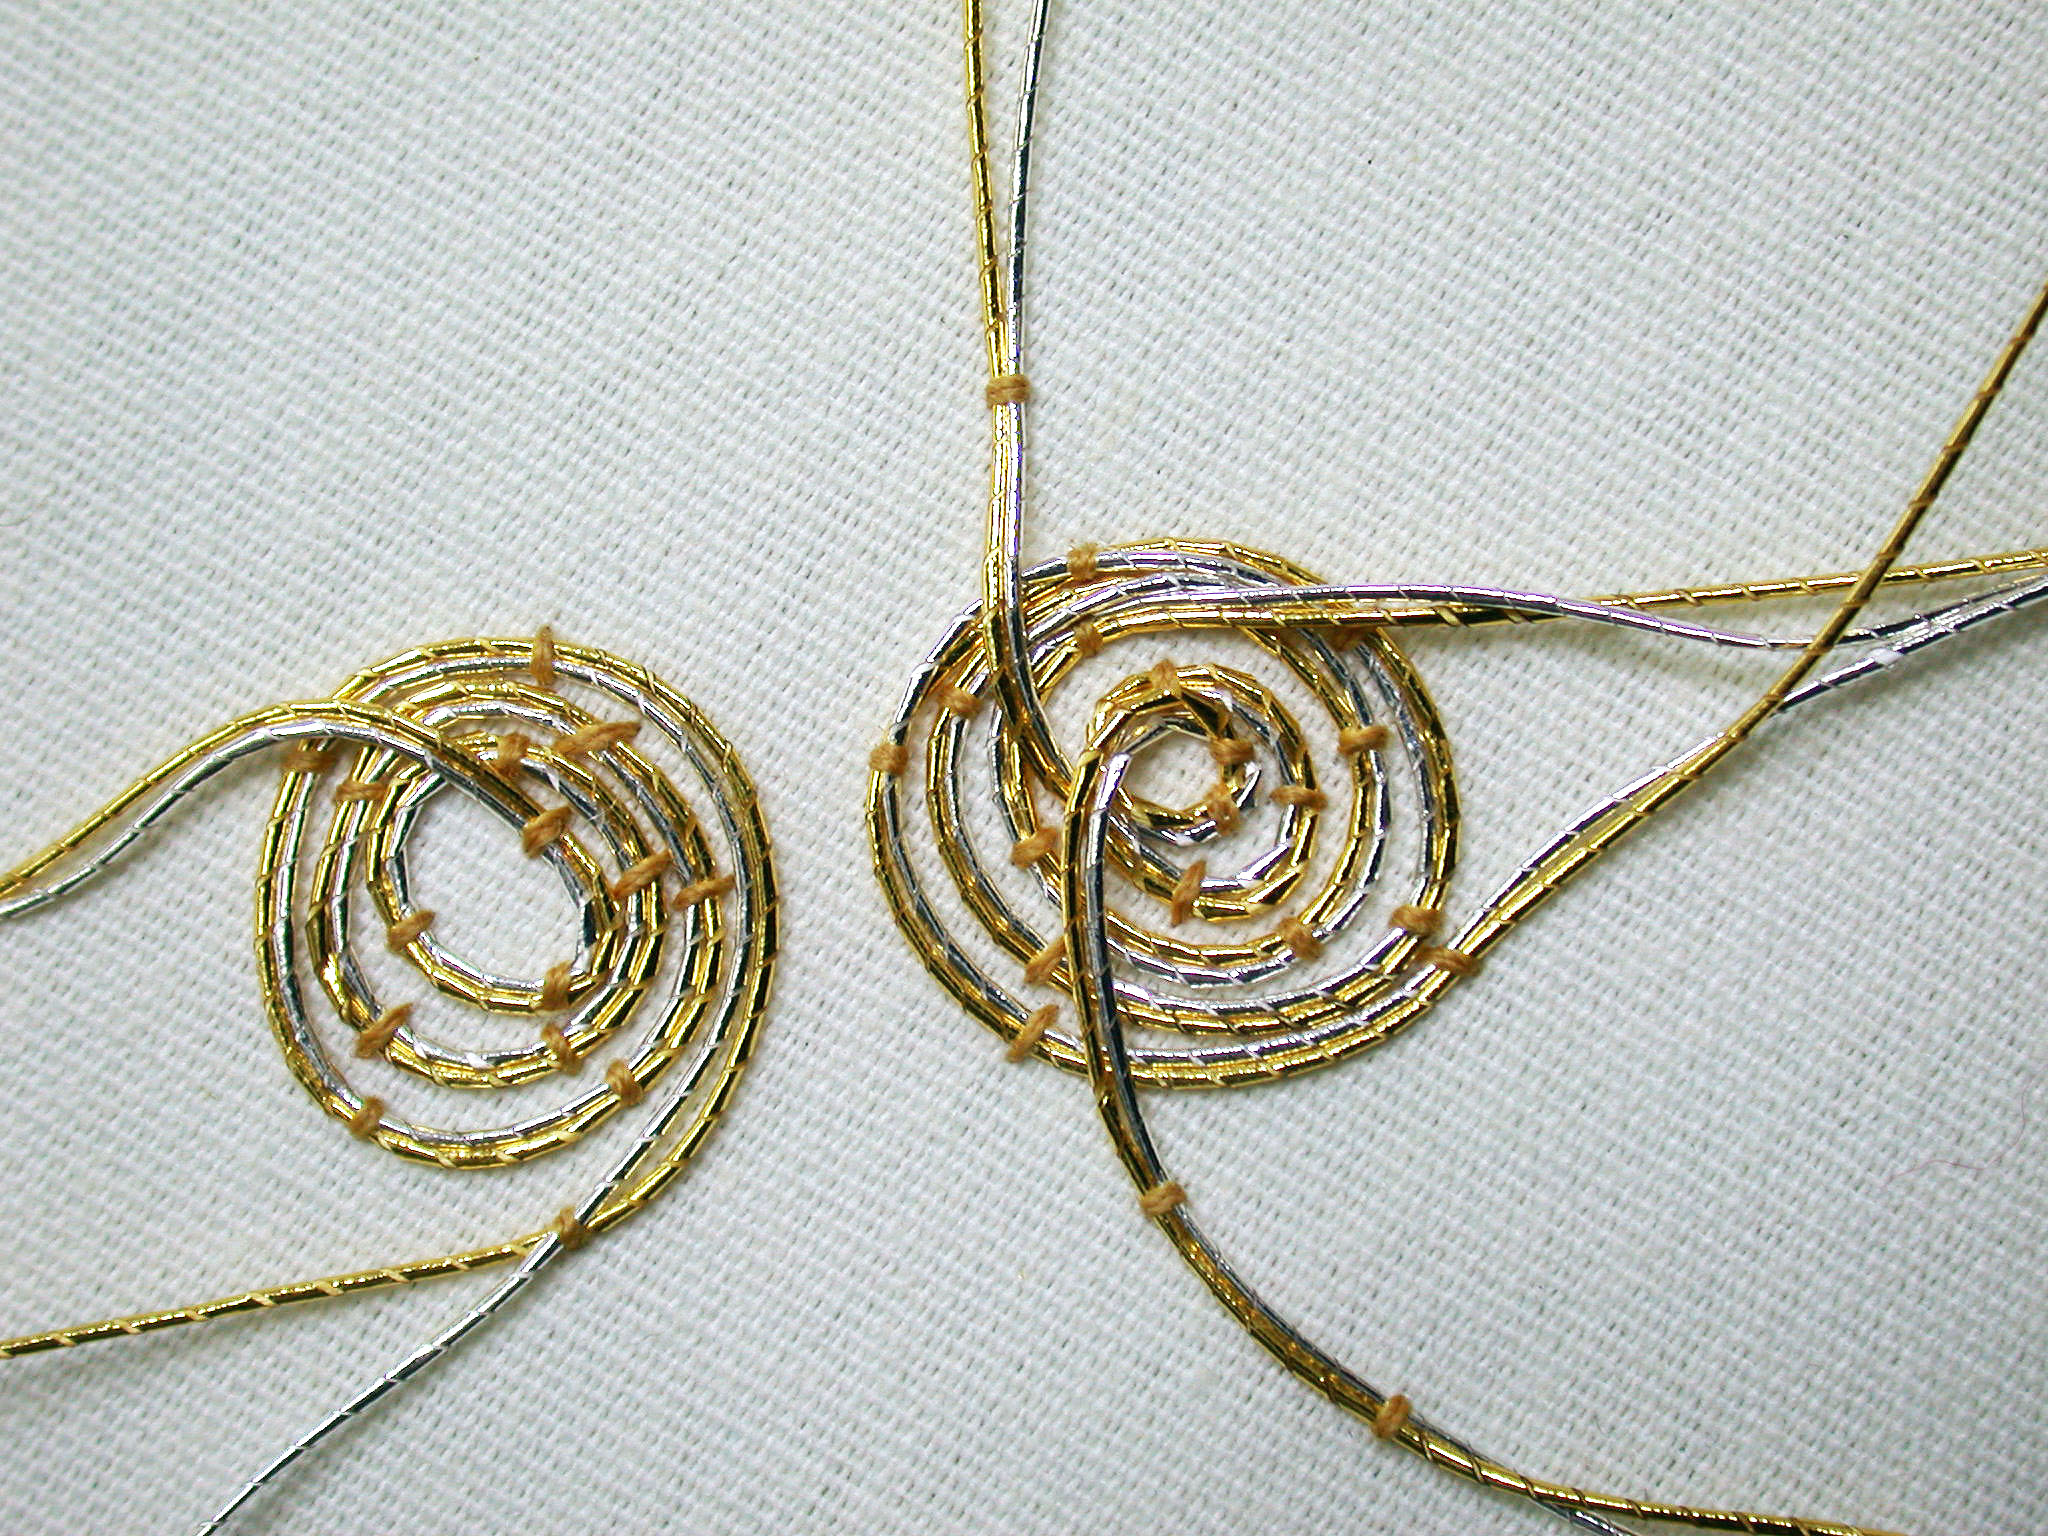 Gold Passing Thread #1 - 1 meter